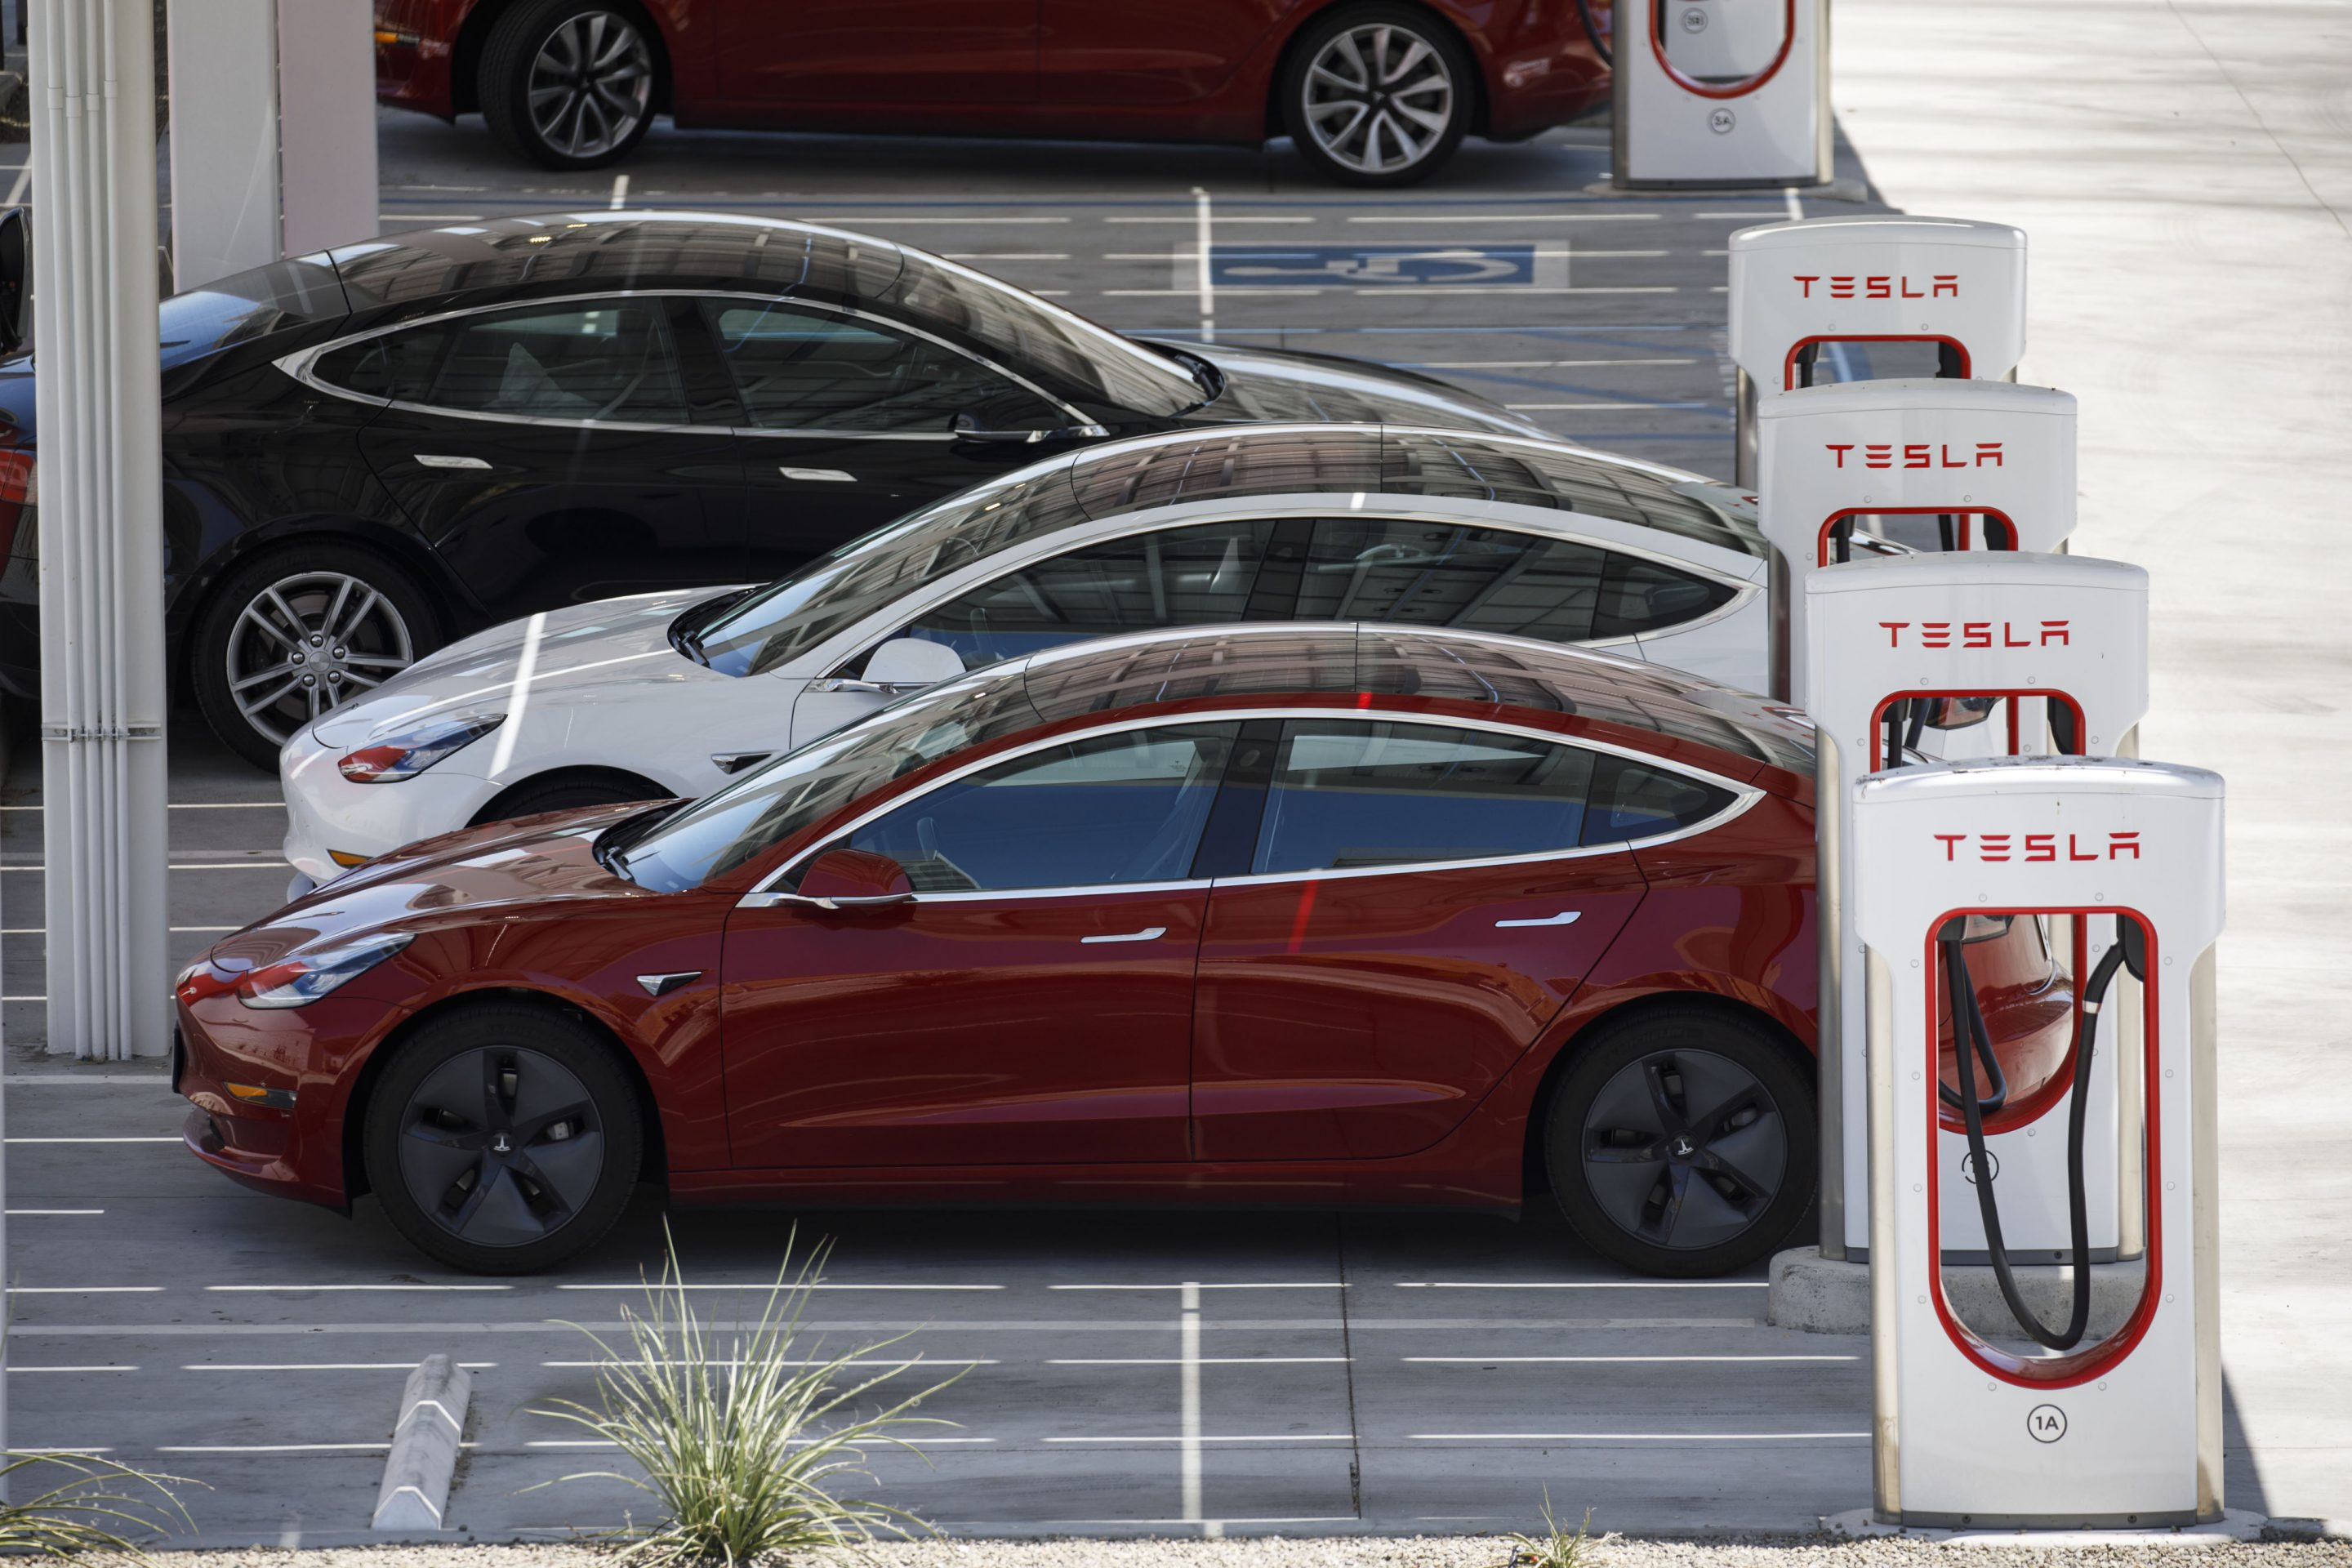 Tesla Inc. Model 3 electric vehicles charge at the Tesla Supercharger station in Kettleman City, California, U.S., on Wednesday, July 31, 2019.